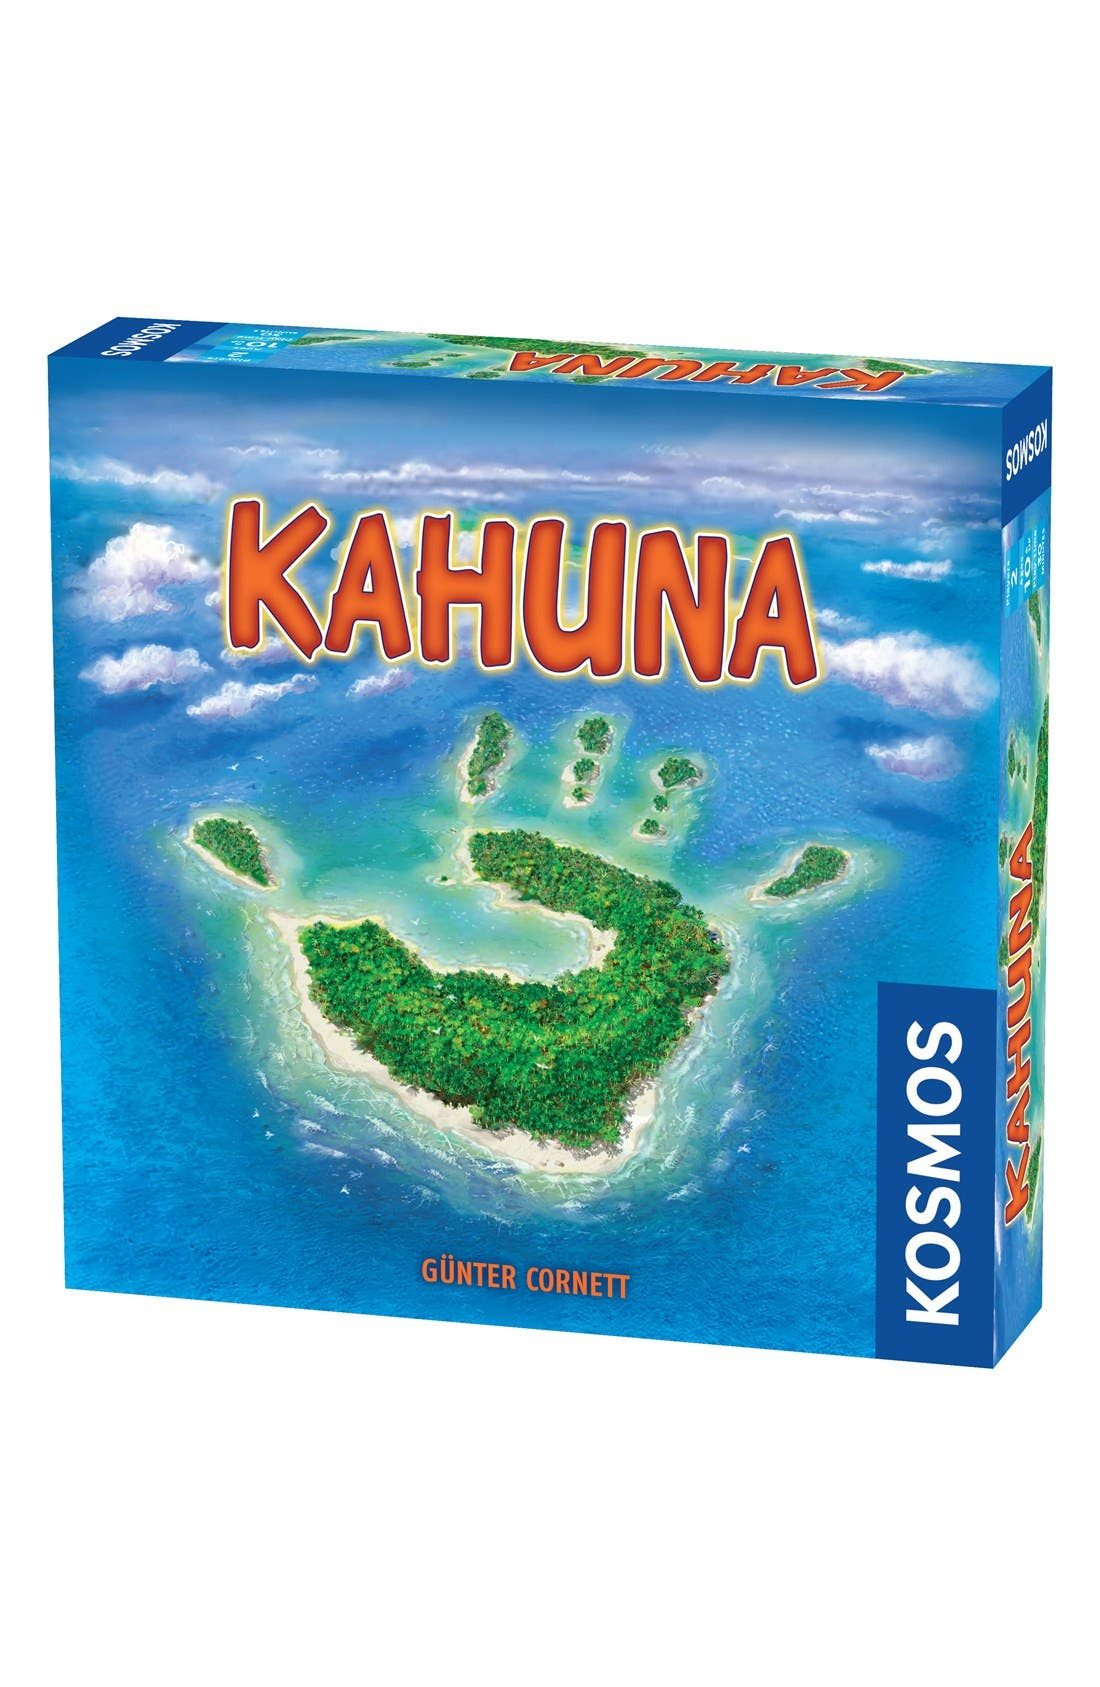 Alternate Image 1 Selected - Thames & Kosmos 'Kahuna' Two-Player Board Game